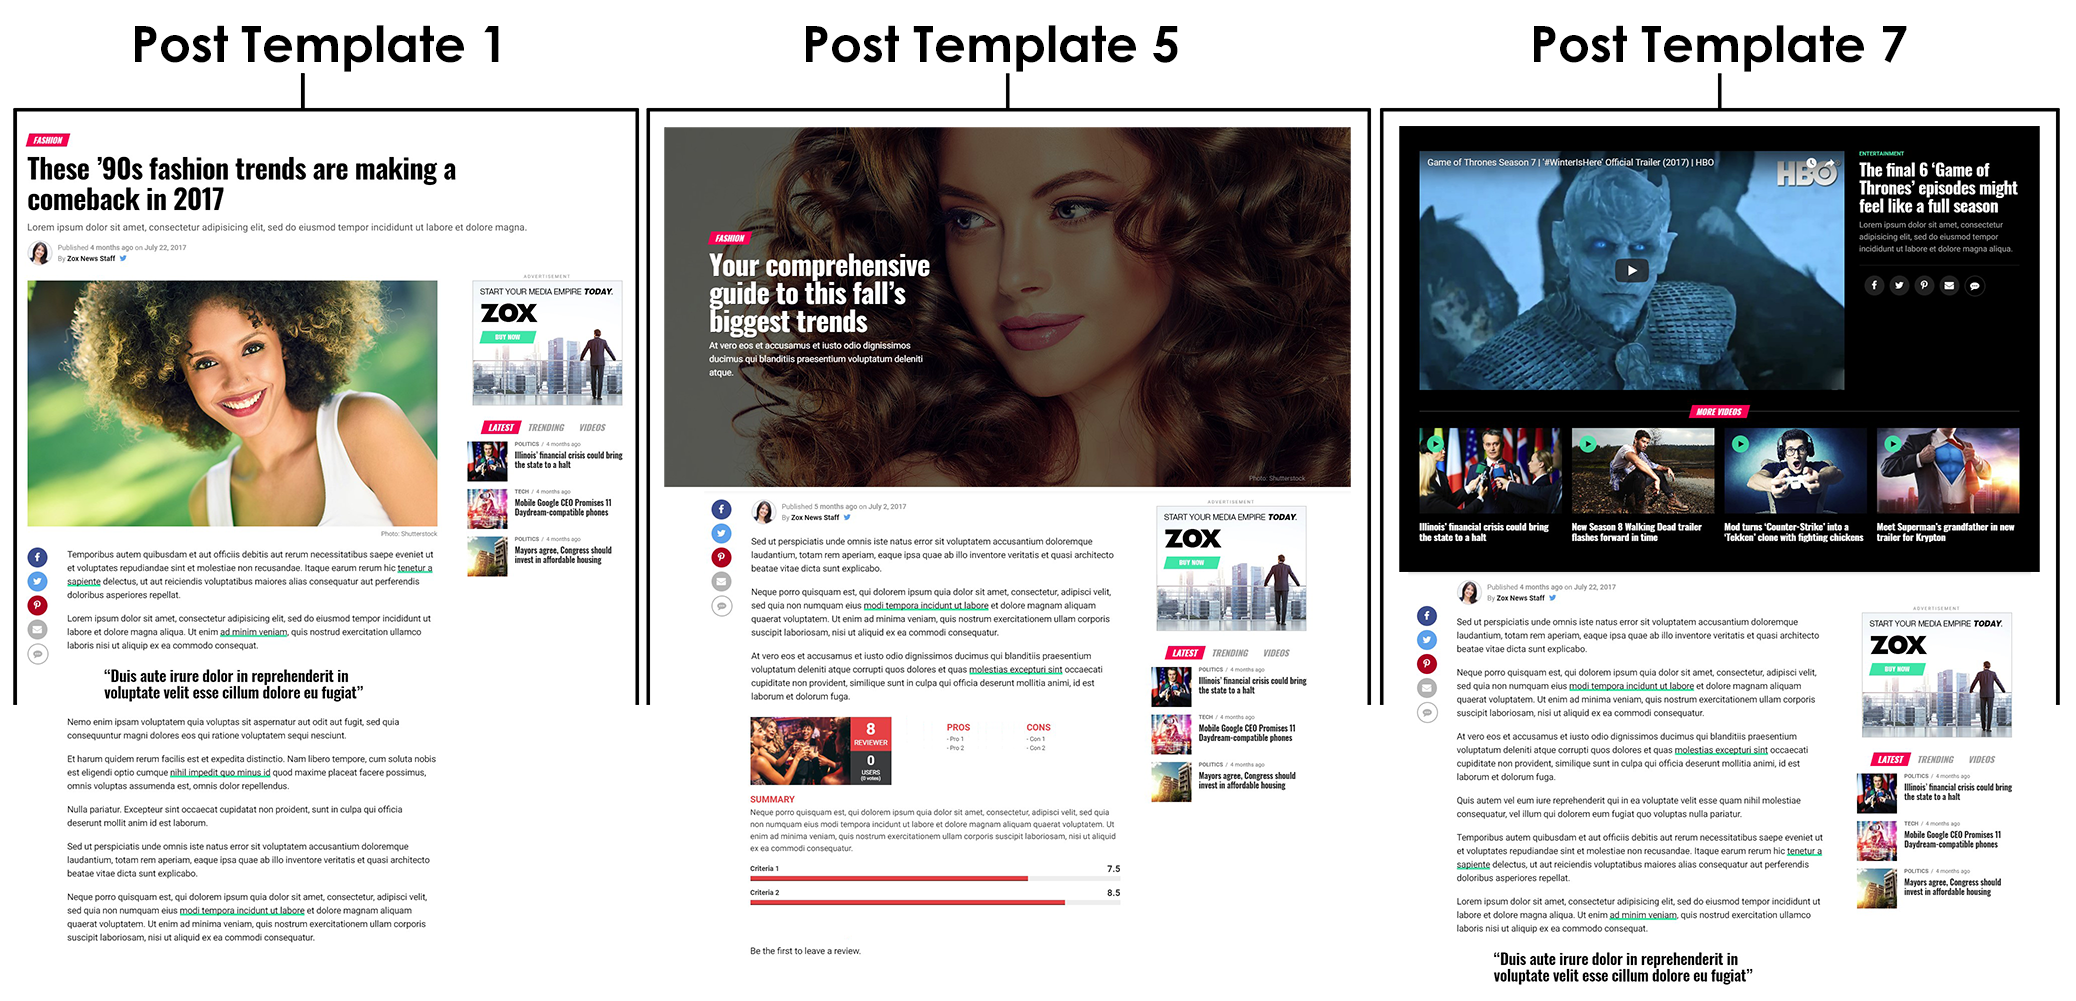 3-Post-Templates-Side-By-Side-1